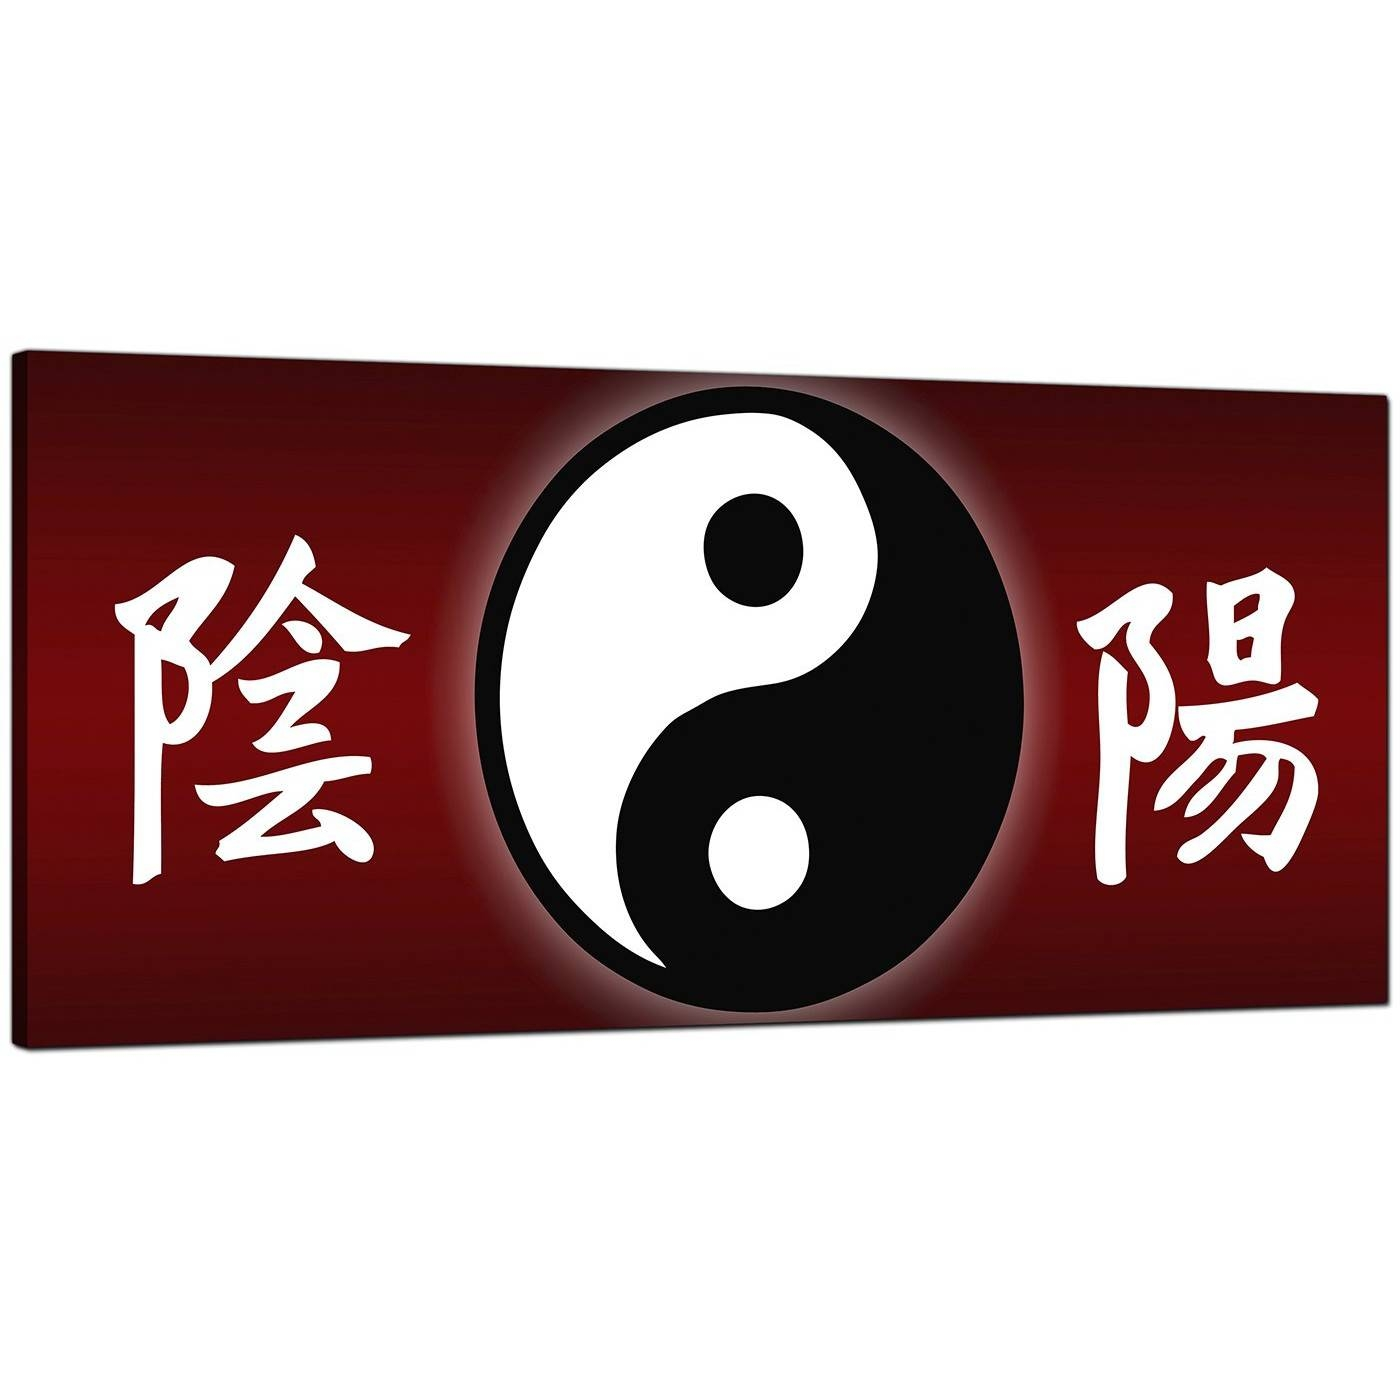 Cheap Red Canvas Wall Art Of Chinese Writing And Yin Yang Symbol In Most Recent Chinese Symbol Wall Art (View 4 of 30)